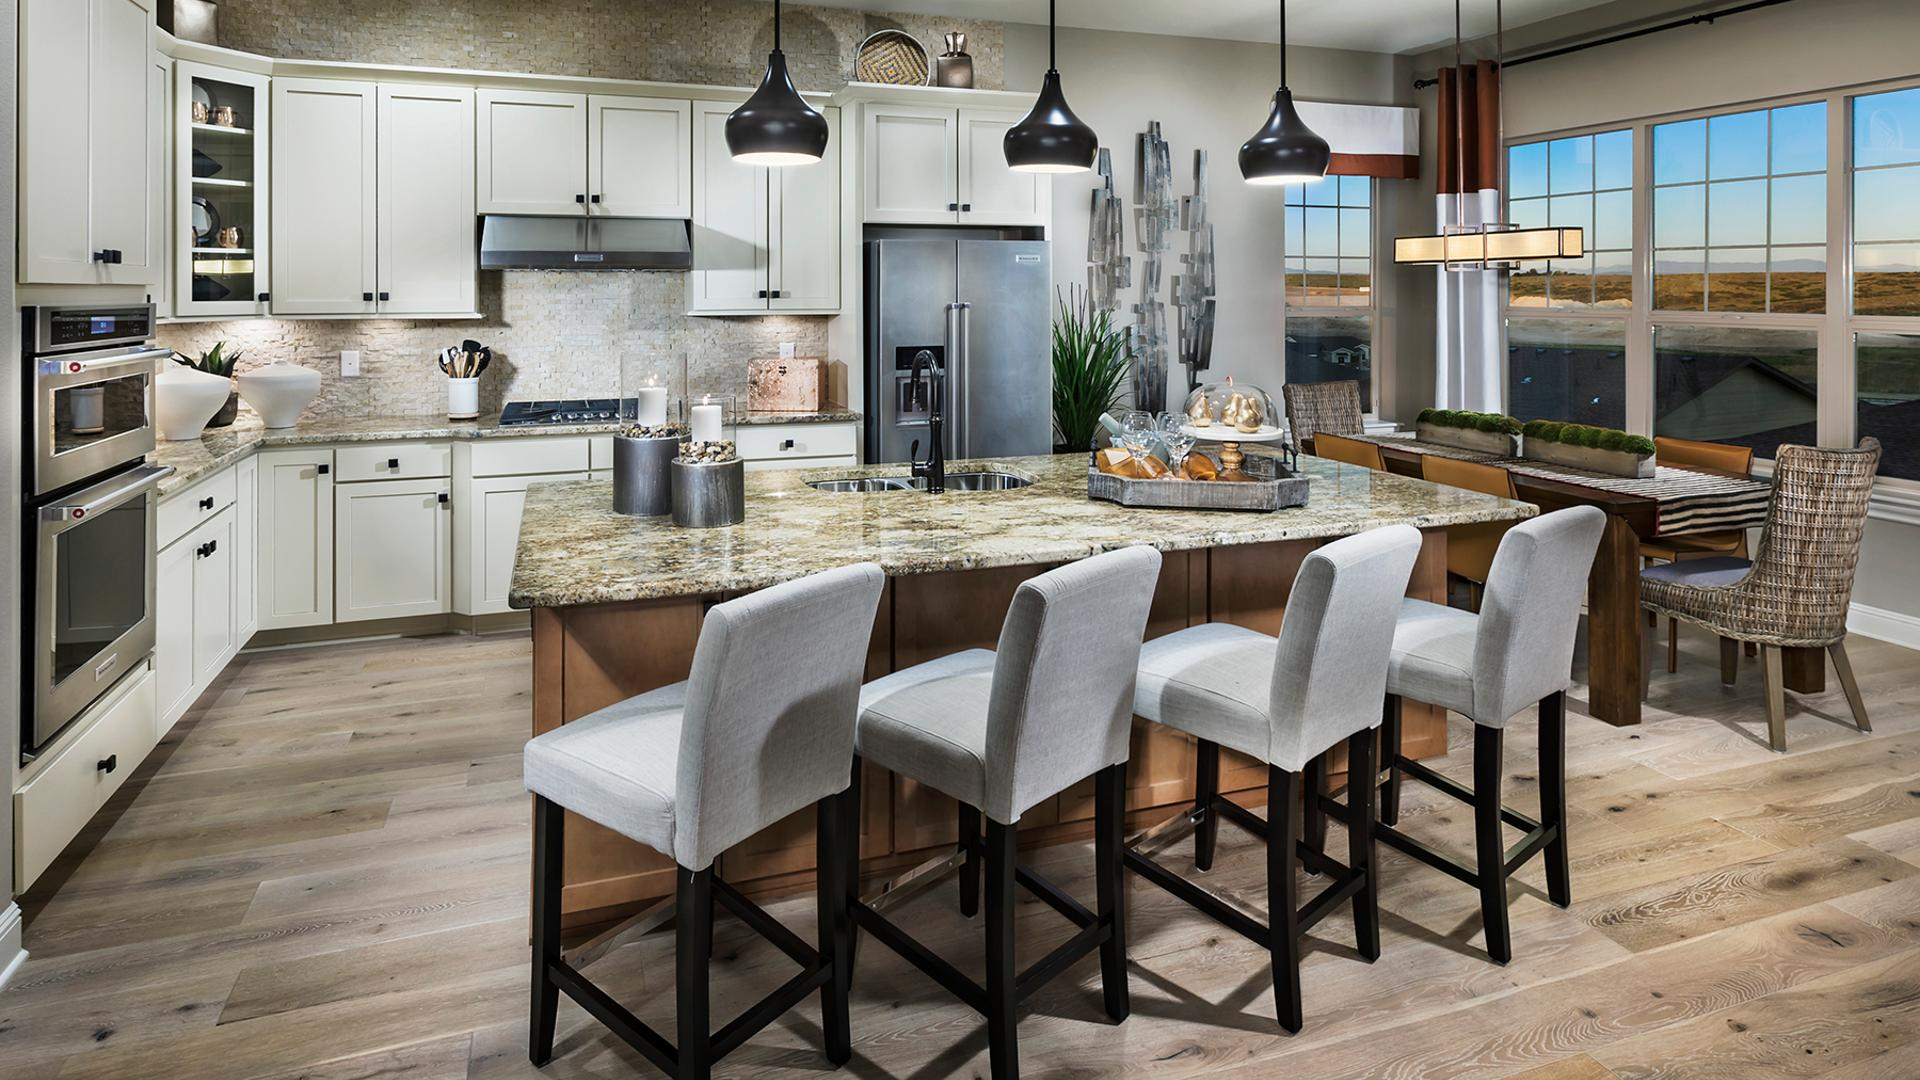 Bancroft chef's kitchen with island seating